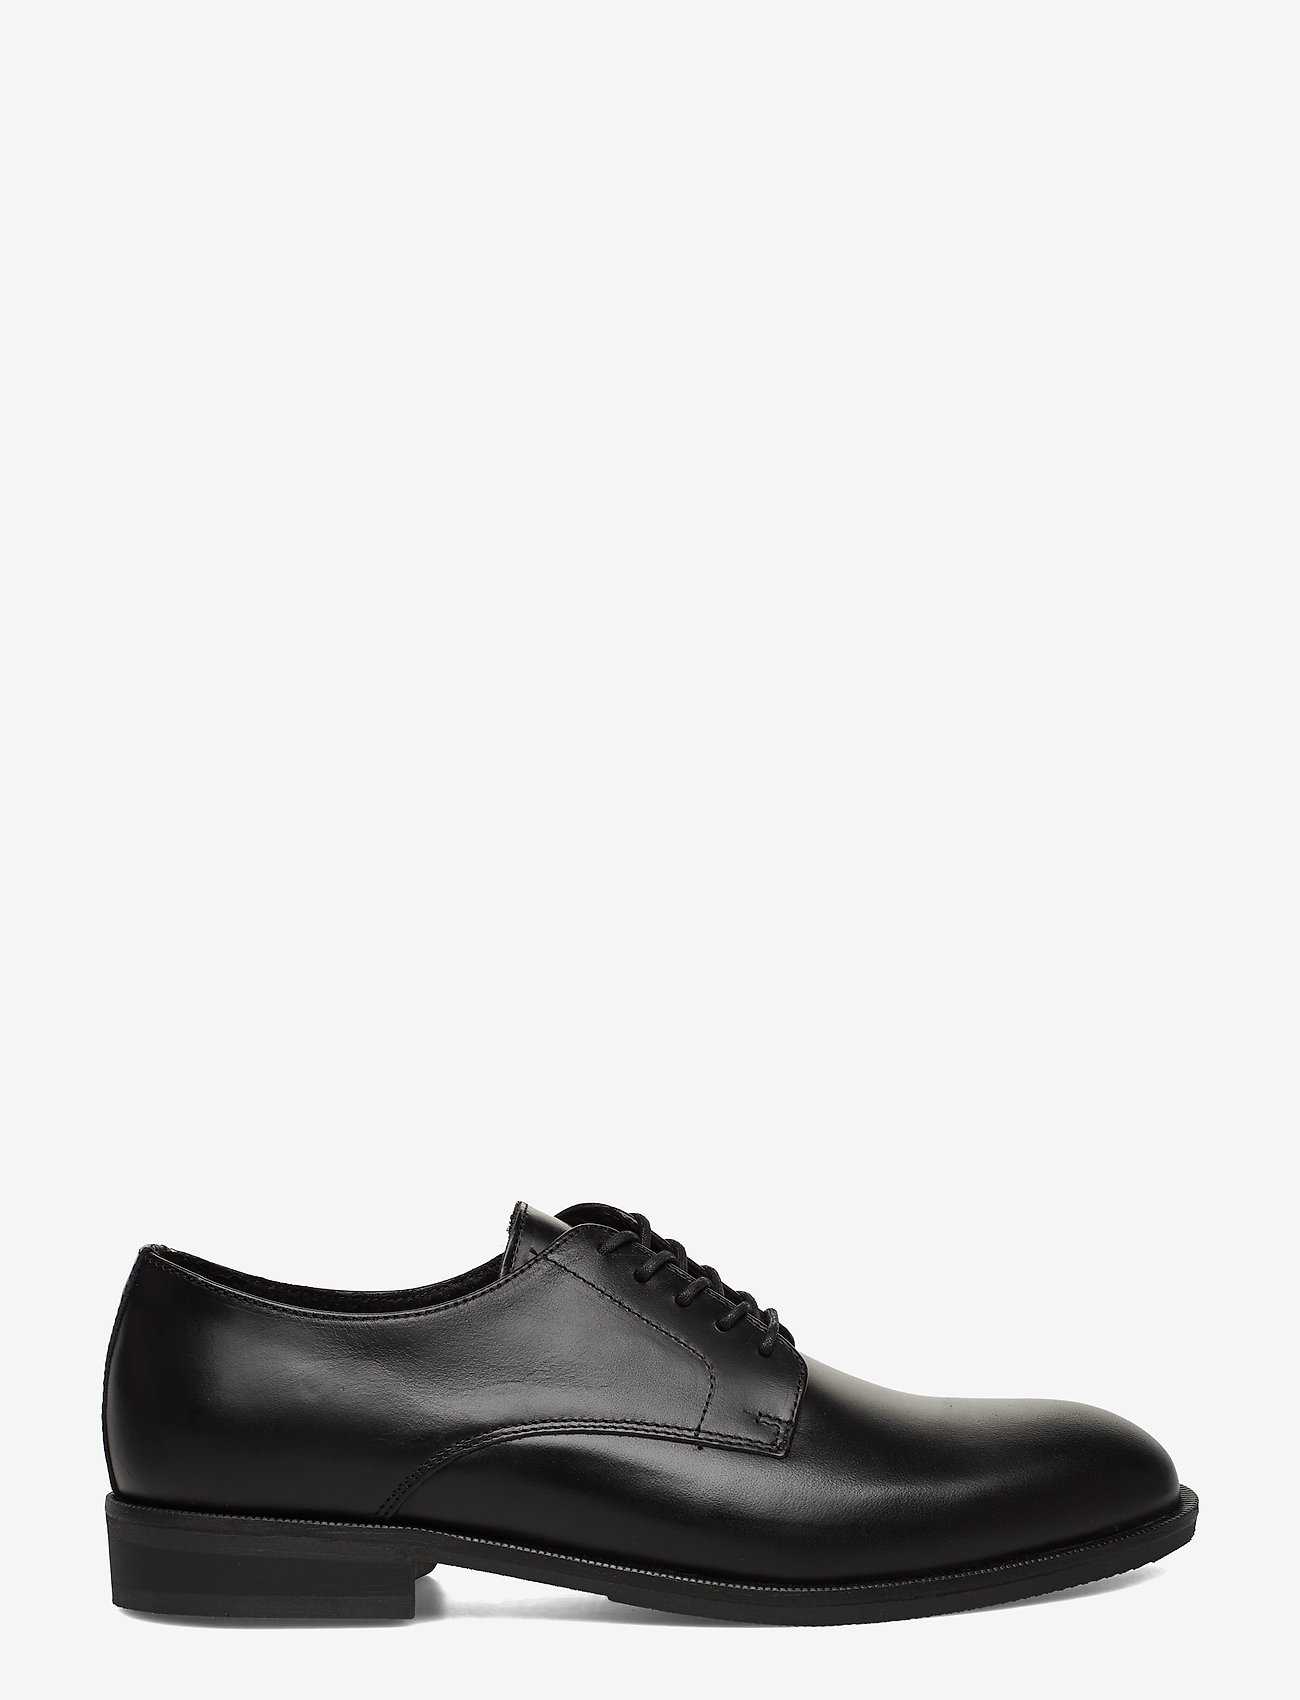 Selected Homme - SLHLOUIS LEATHER DERBY SHOE B NOOS - snøresko - black - 1